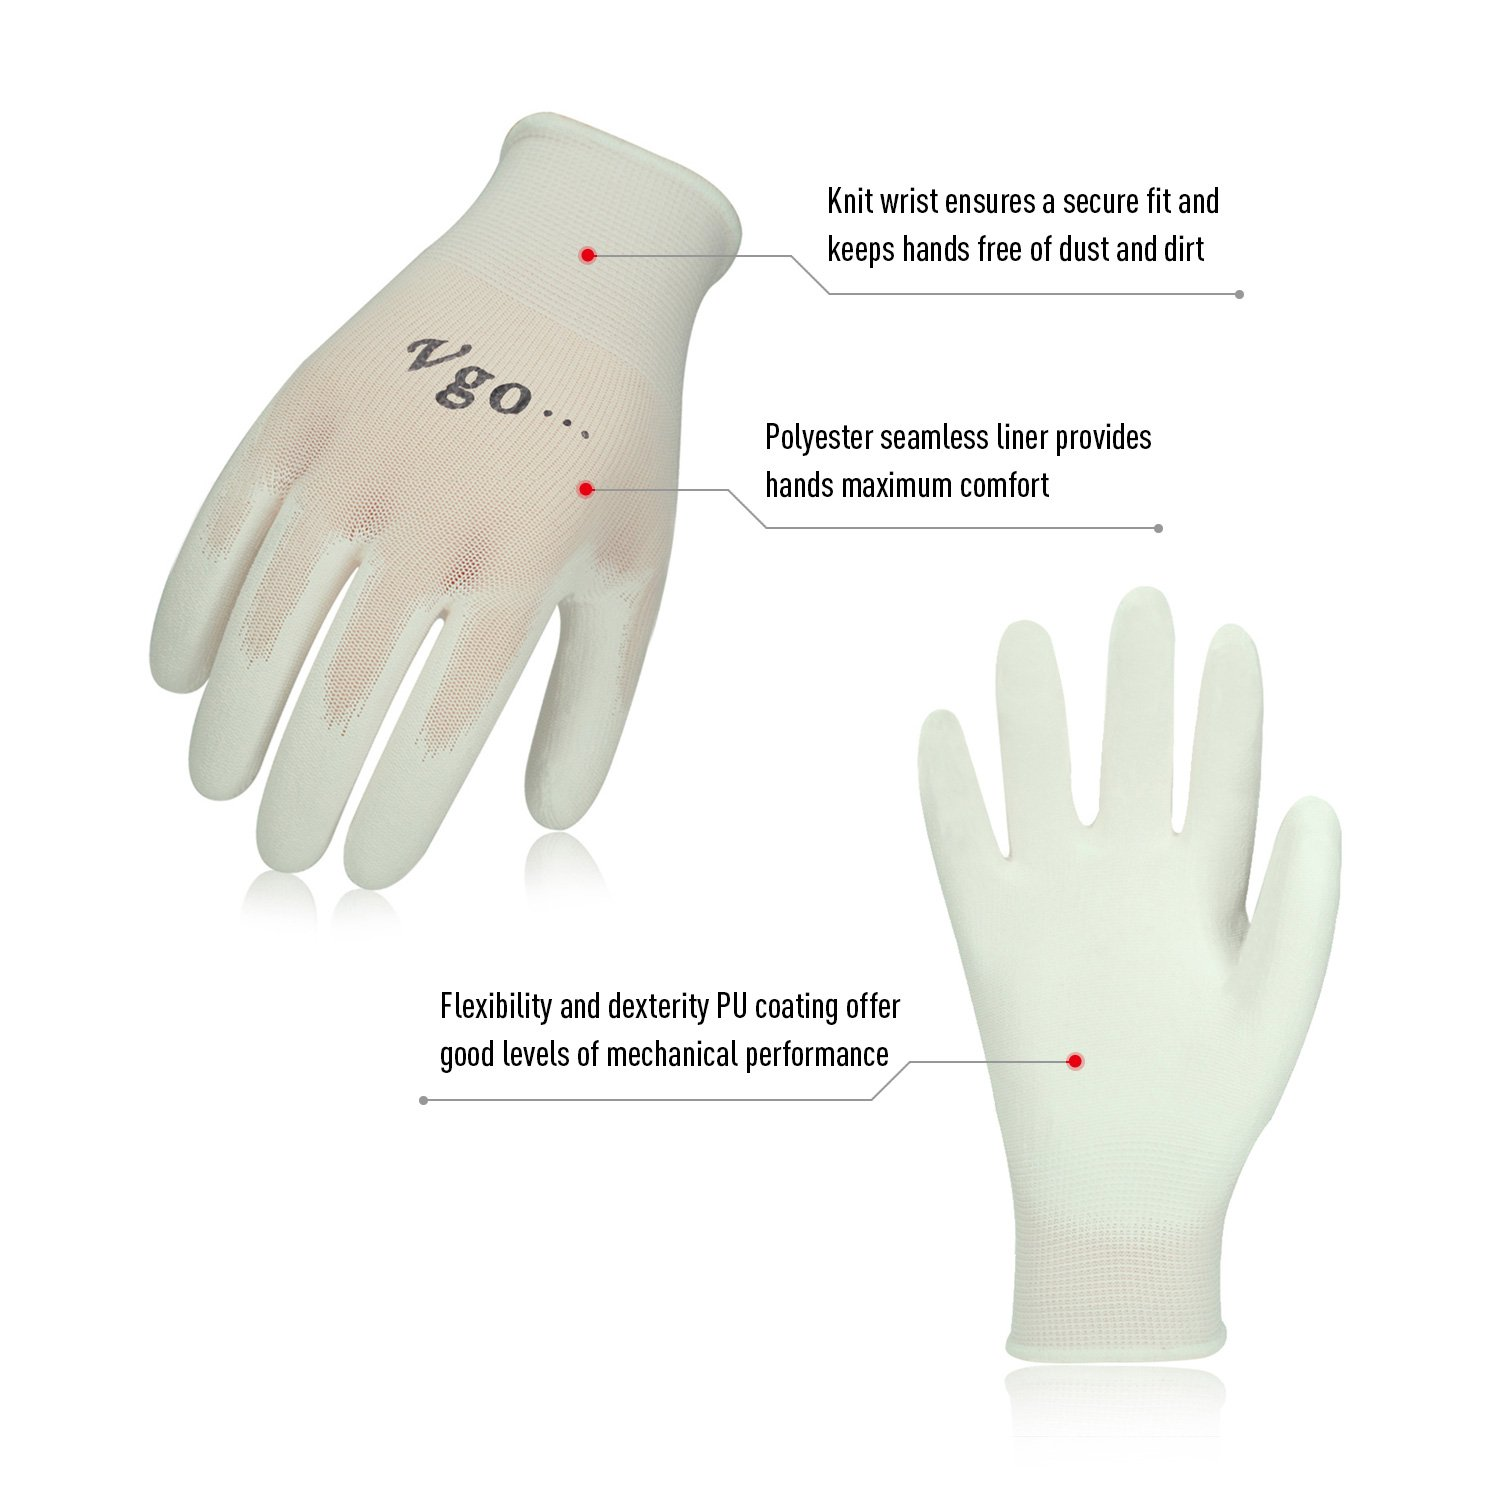 Vgo 15Pairs PU Coated Gardening and Work Gloves Size L,White,PU2103